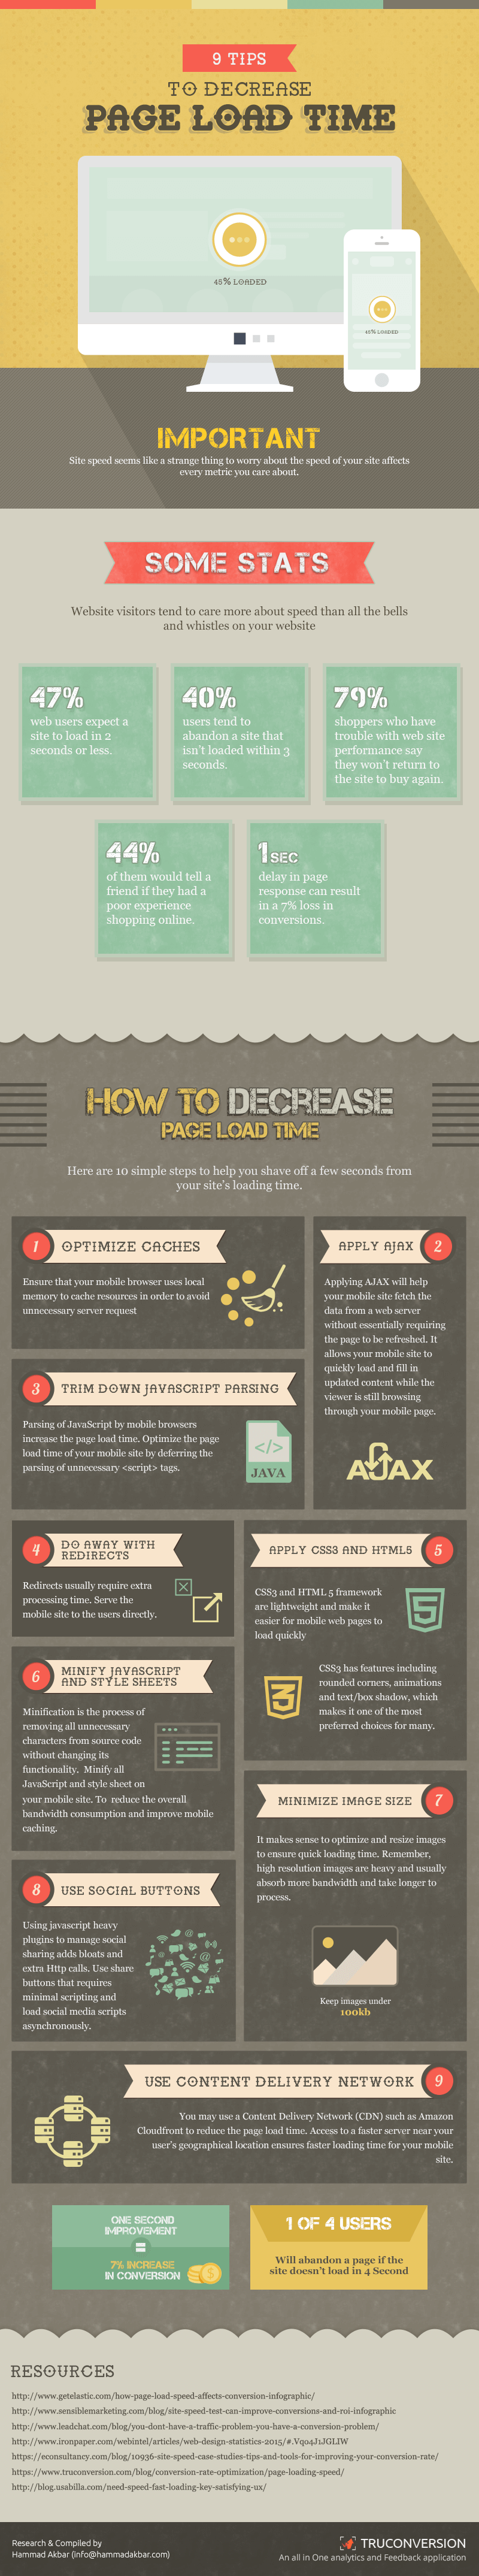 decrease-pageload-time